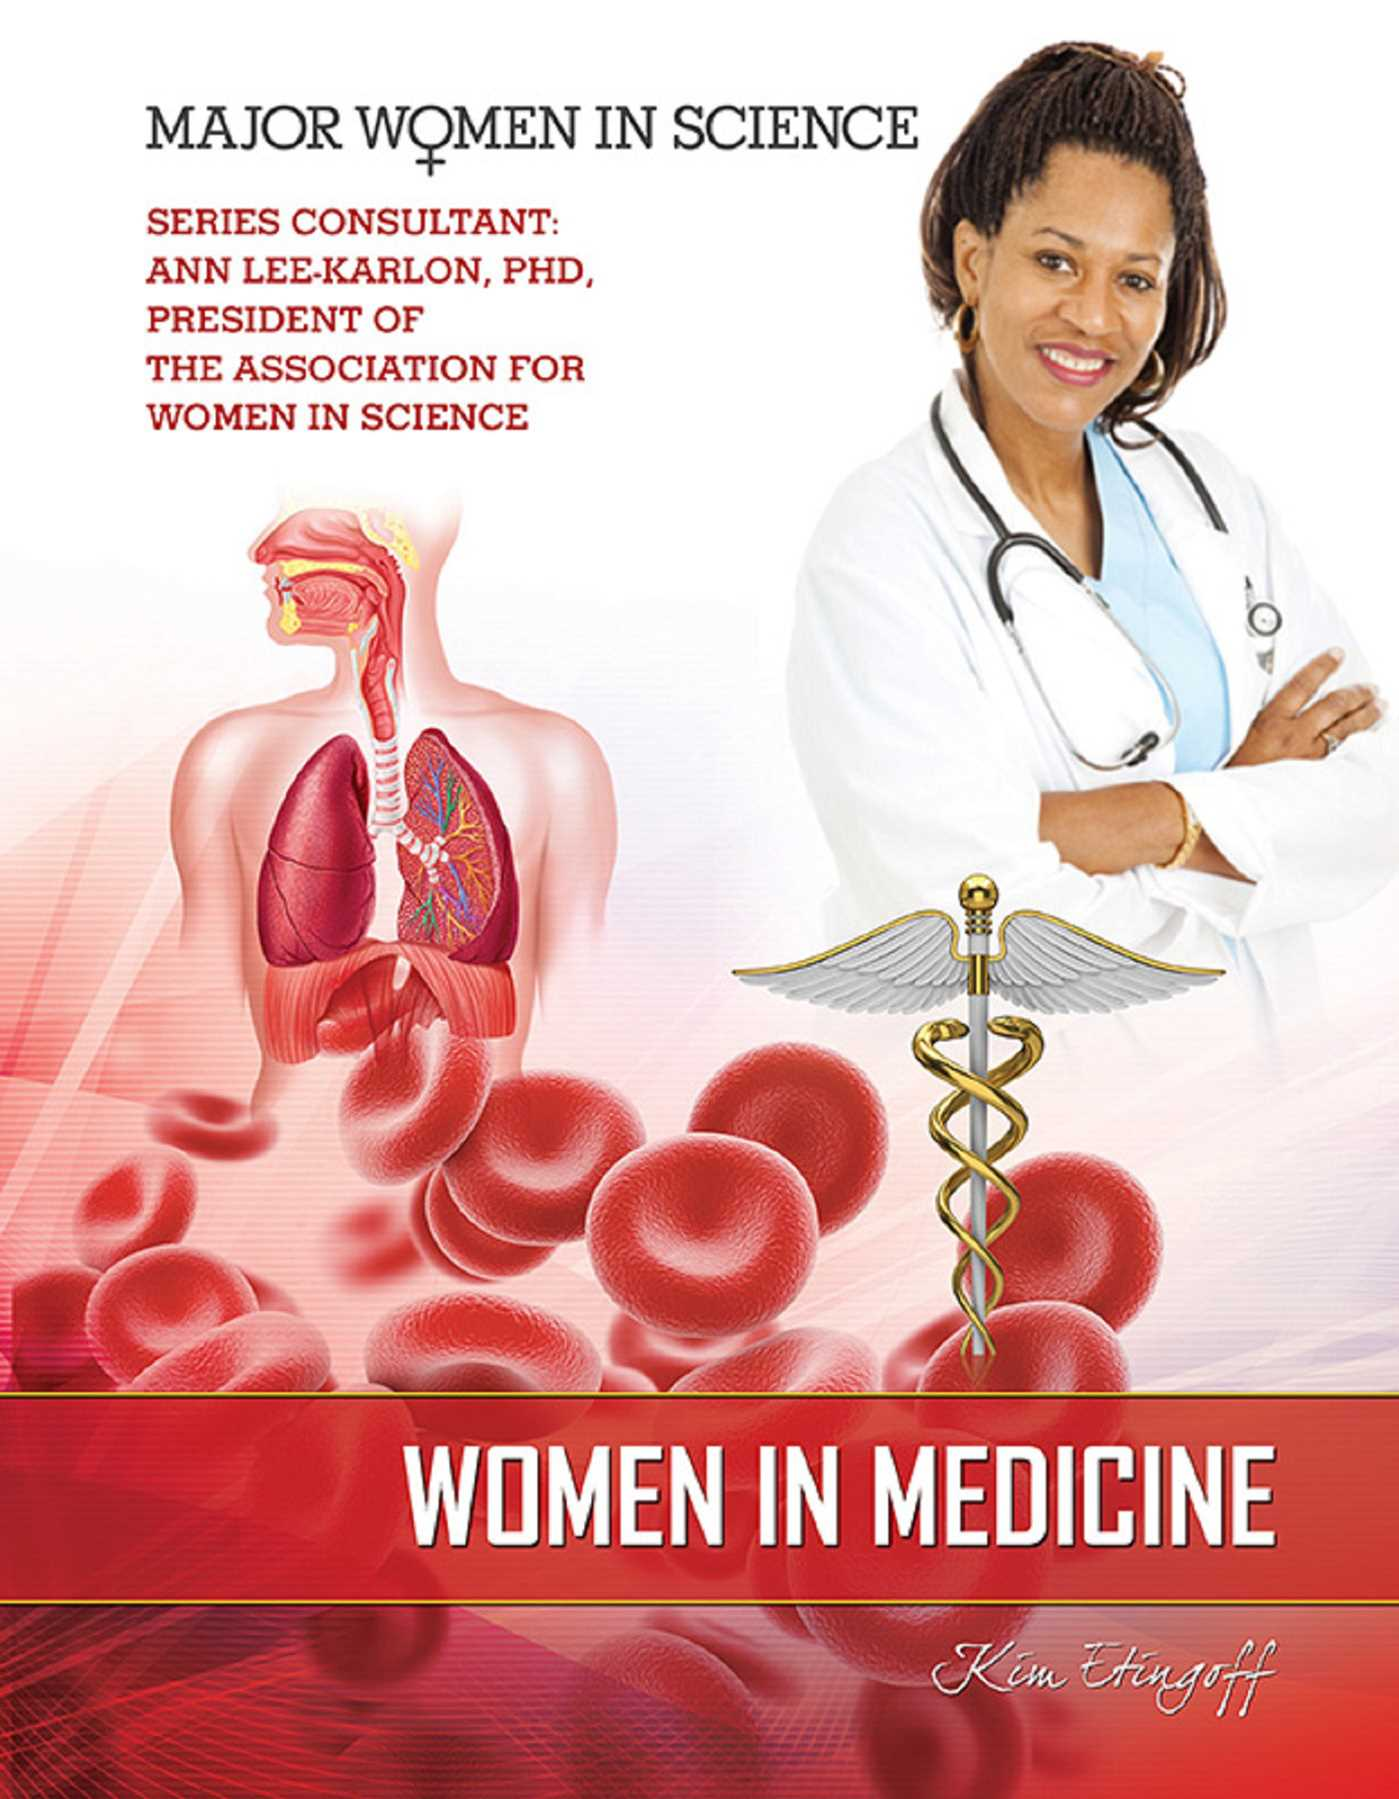 "women in medicine ""women in medicine, be bold"" medical world, powerful women are here to stay women are entering medical school now more than ever, and are learning to provide the best possible care to patients (didn't you see that patients of female physicians have significantly lower mortality rates than patients of male physicians (tsugawa et al, 2016)."